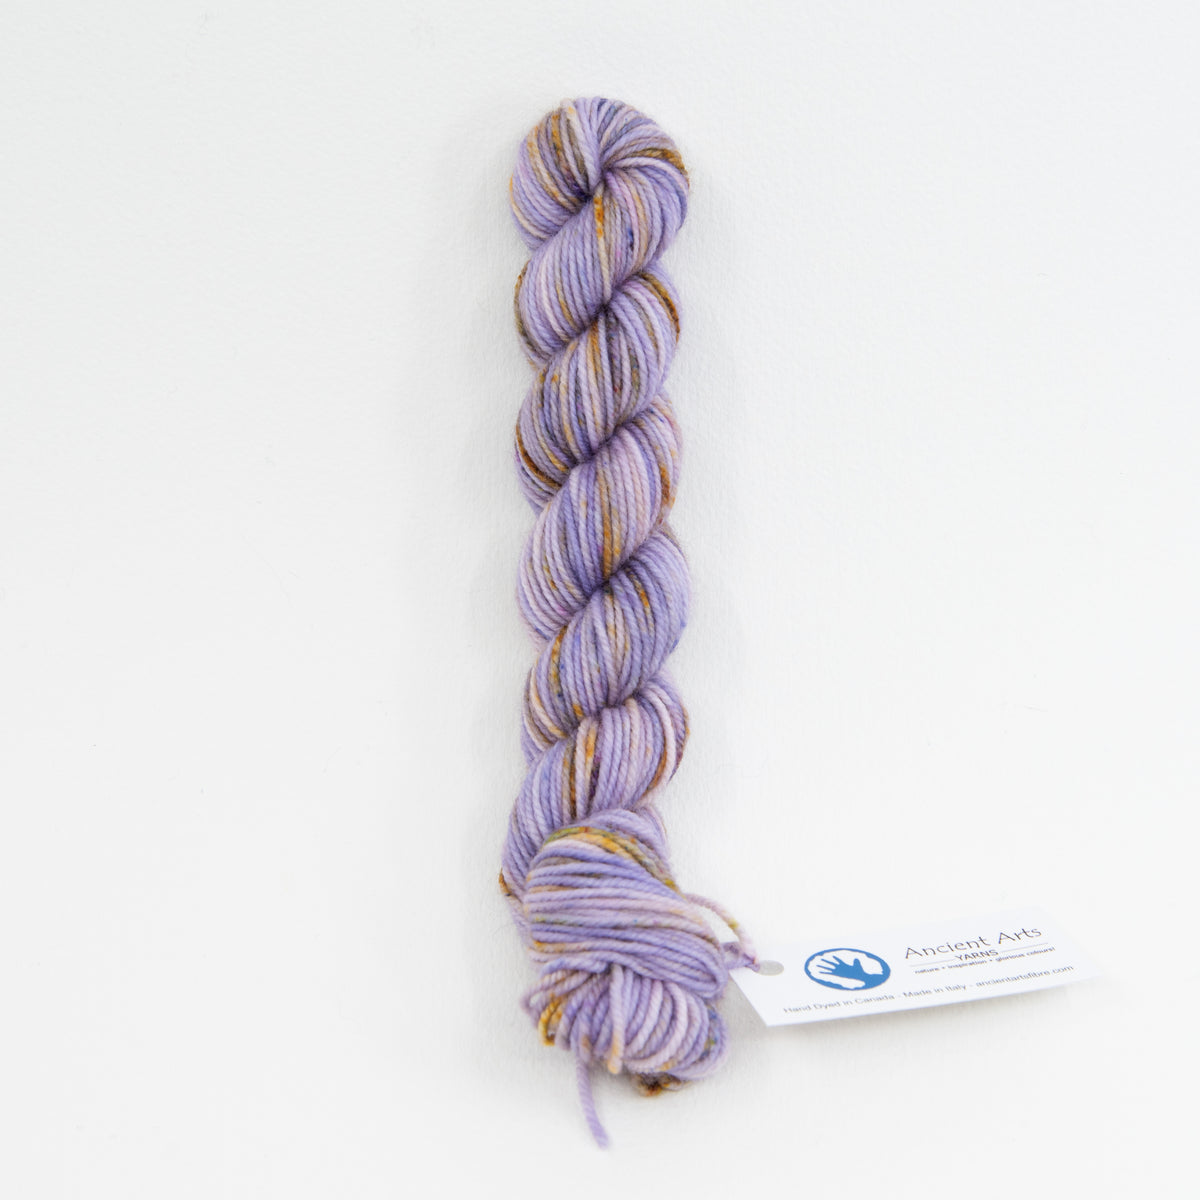 Lavender Fields Forever - Socknado Mini Twister 20 Gram - Dyed Stock